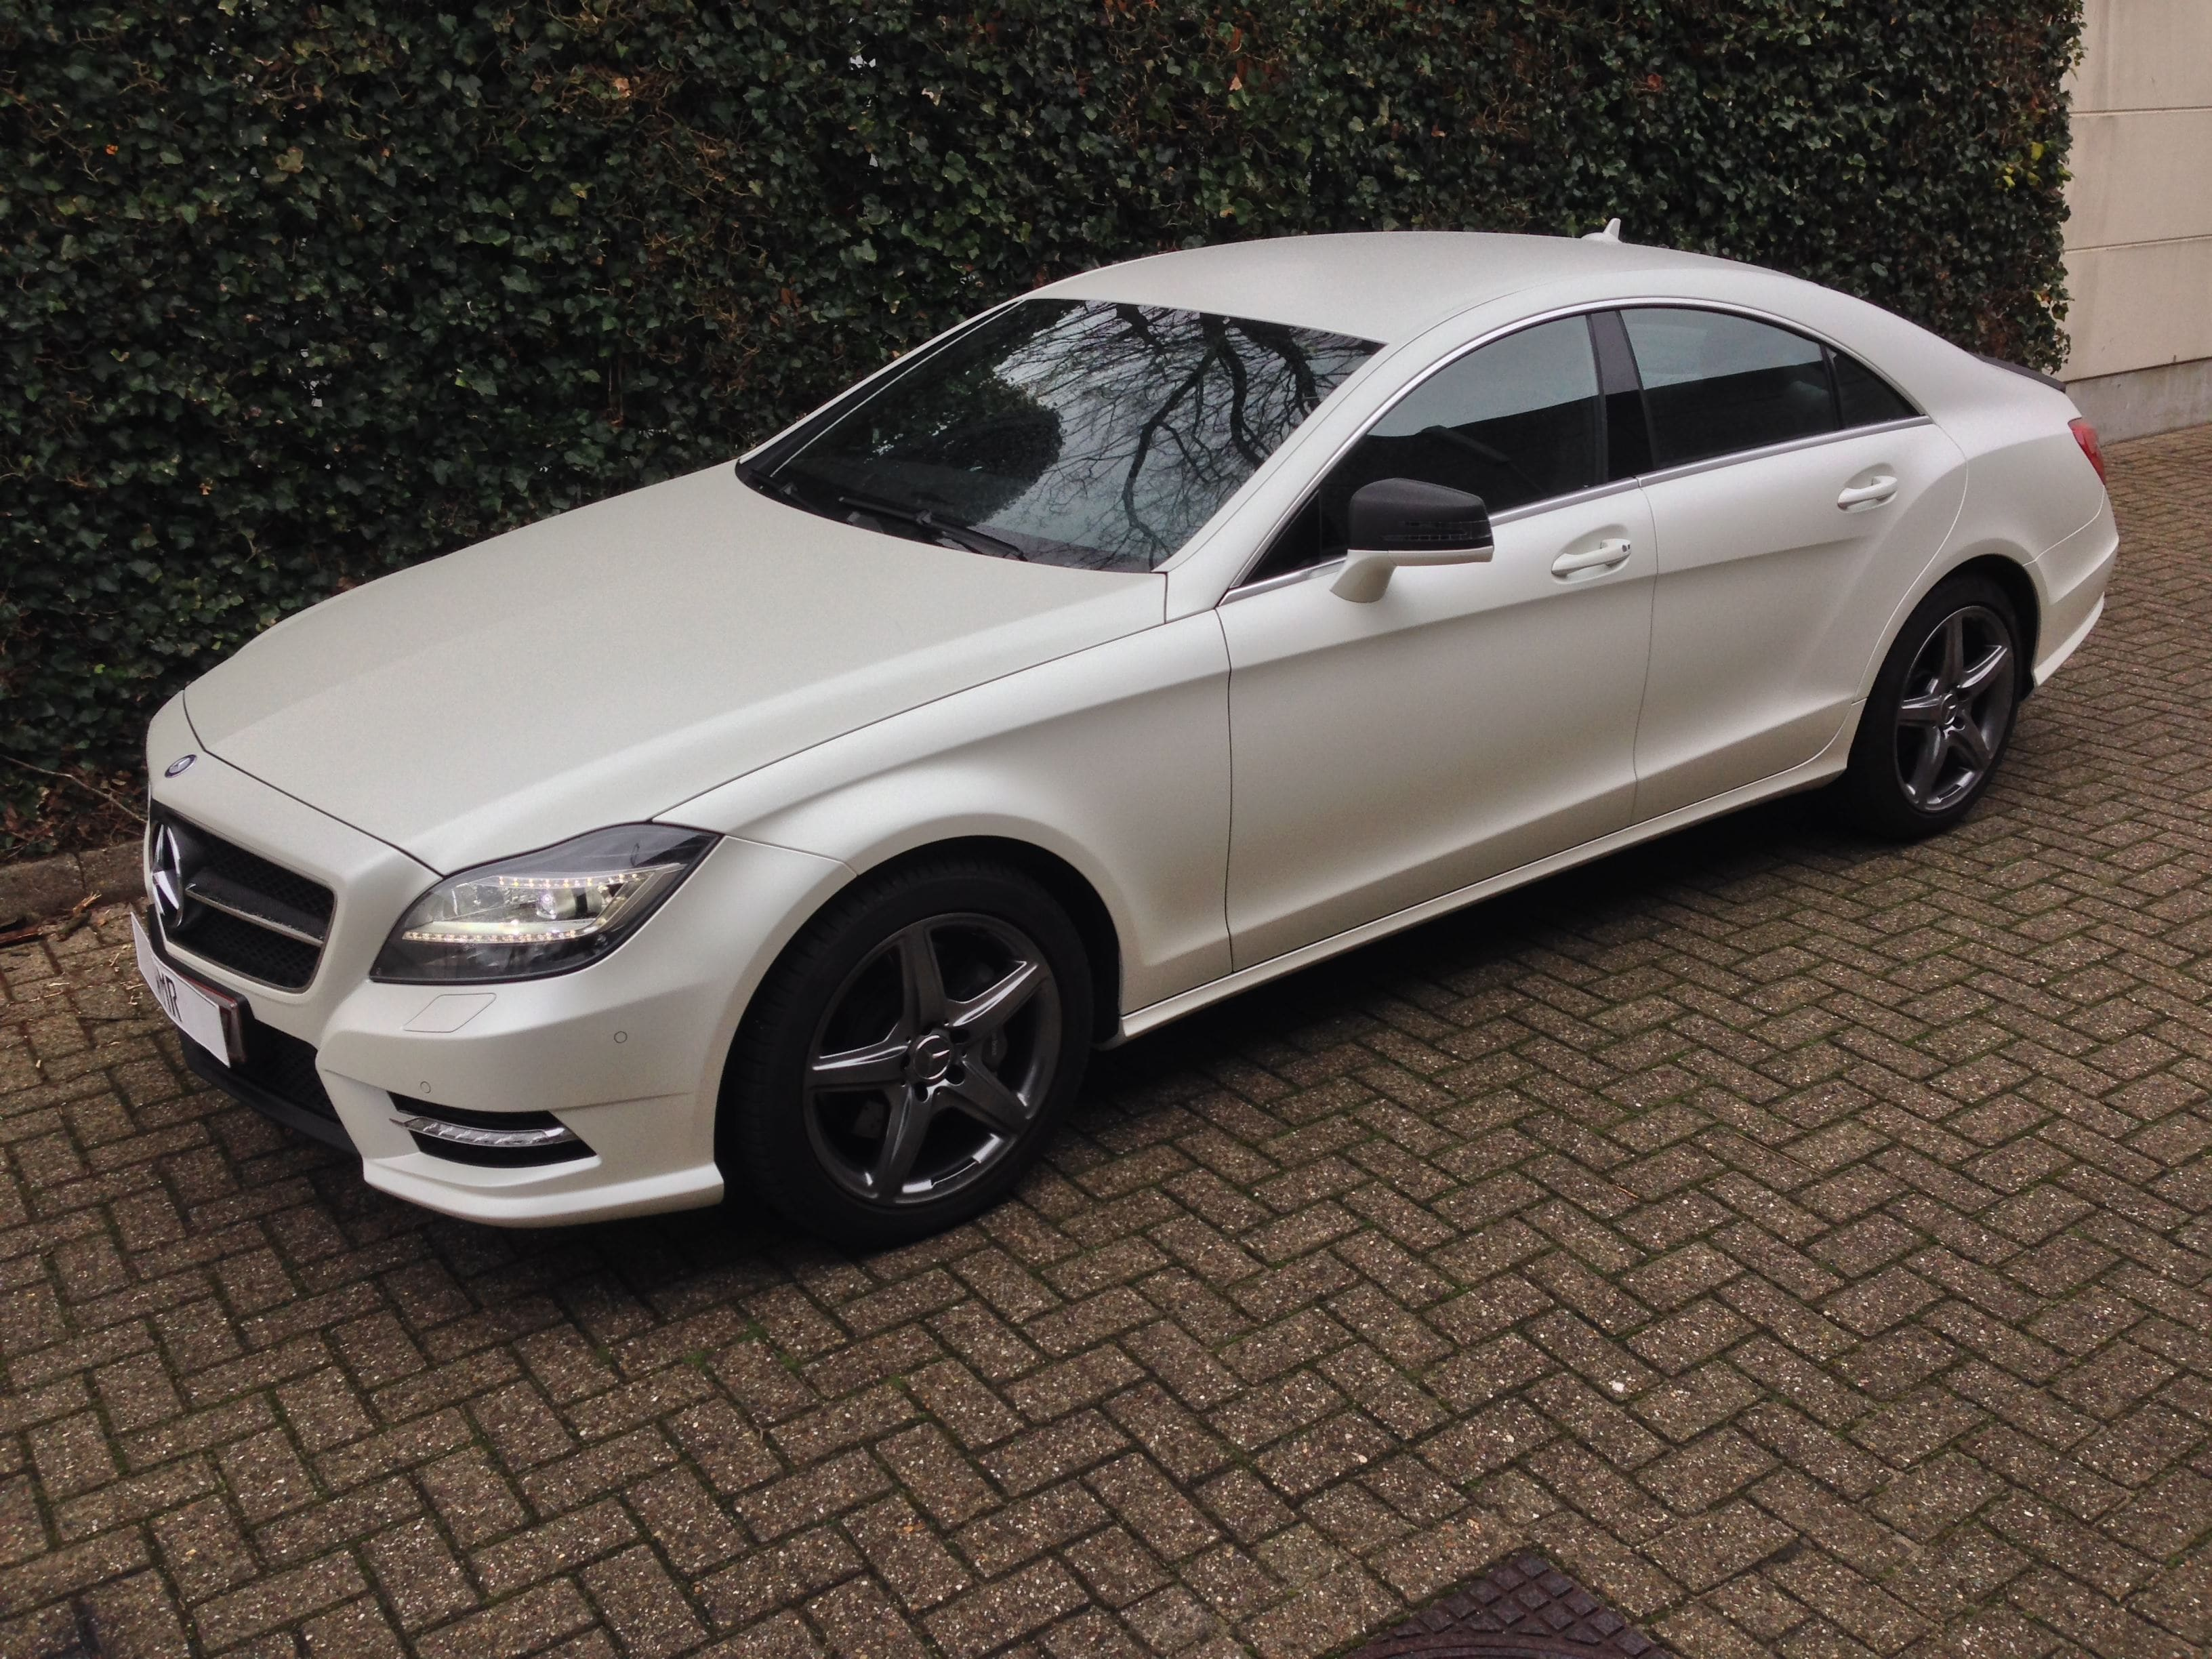 Mercedes CLS met White Satin Pearl Wrap, Carwrapping door Wrapmyride.nu Foto-nr:6208, ©2020